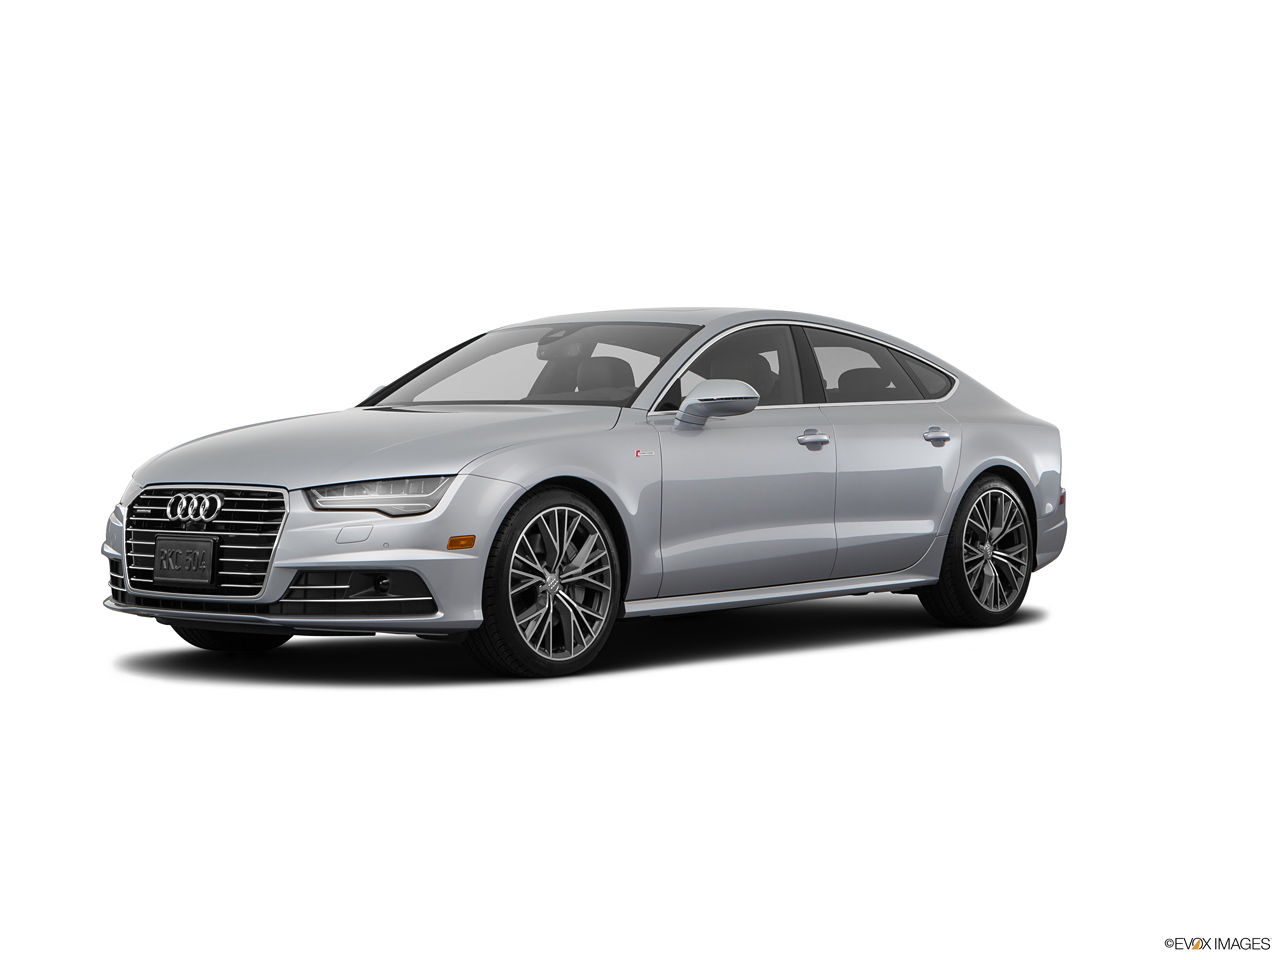 audi a7 2017 40 tfsi quattro 252 hp in saudi arabia new car prices specs reviews photos. Black Bedroom Furniture Sets. Home Design Ideas